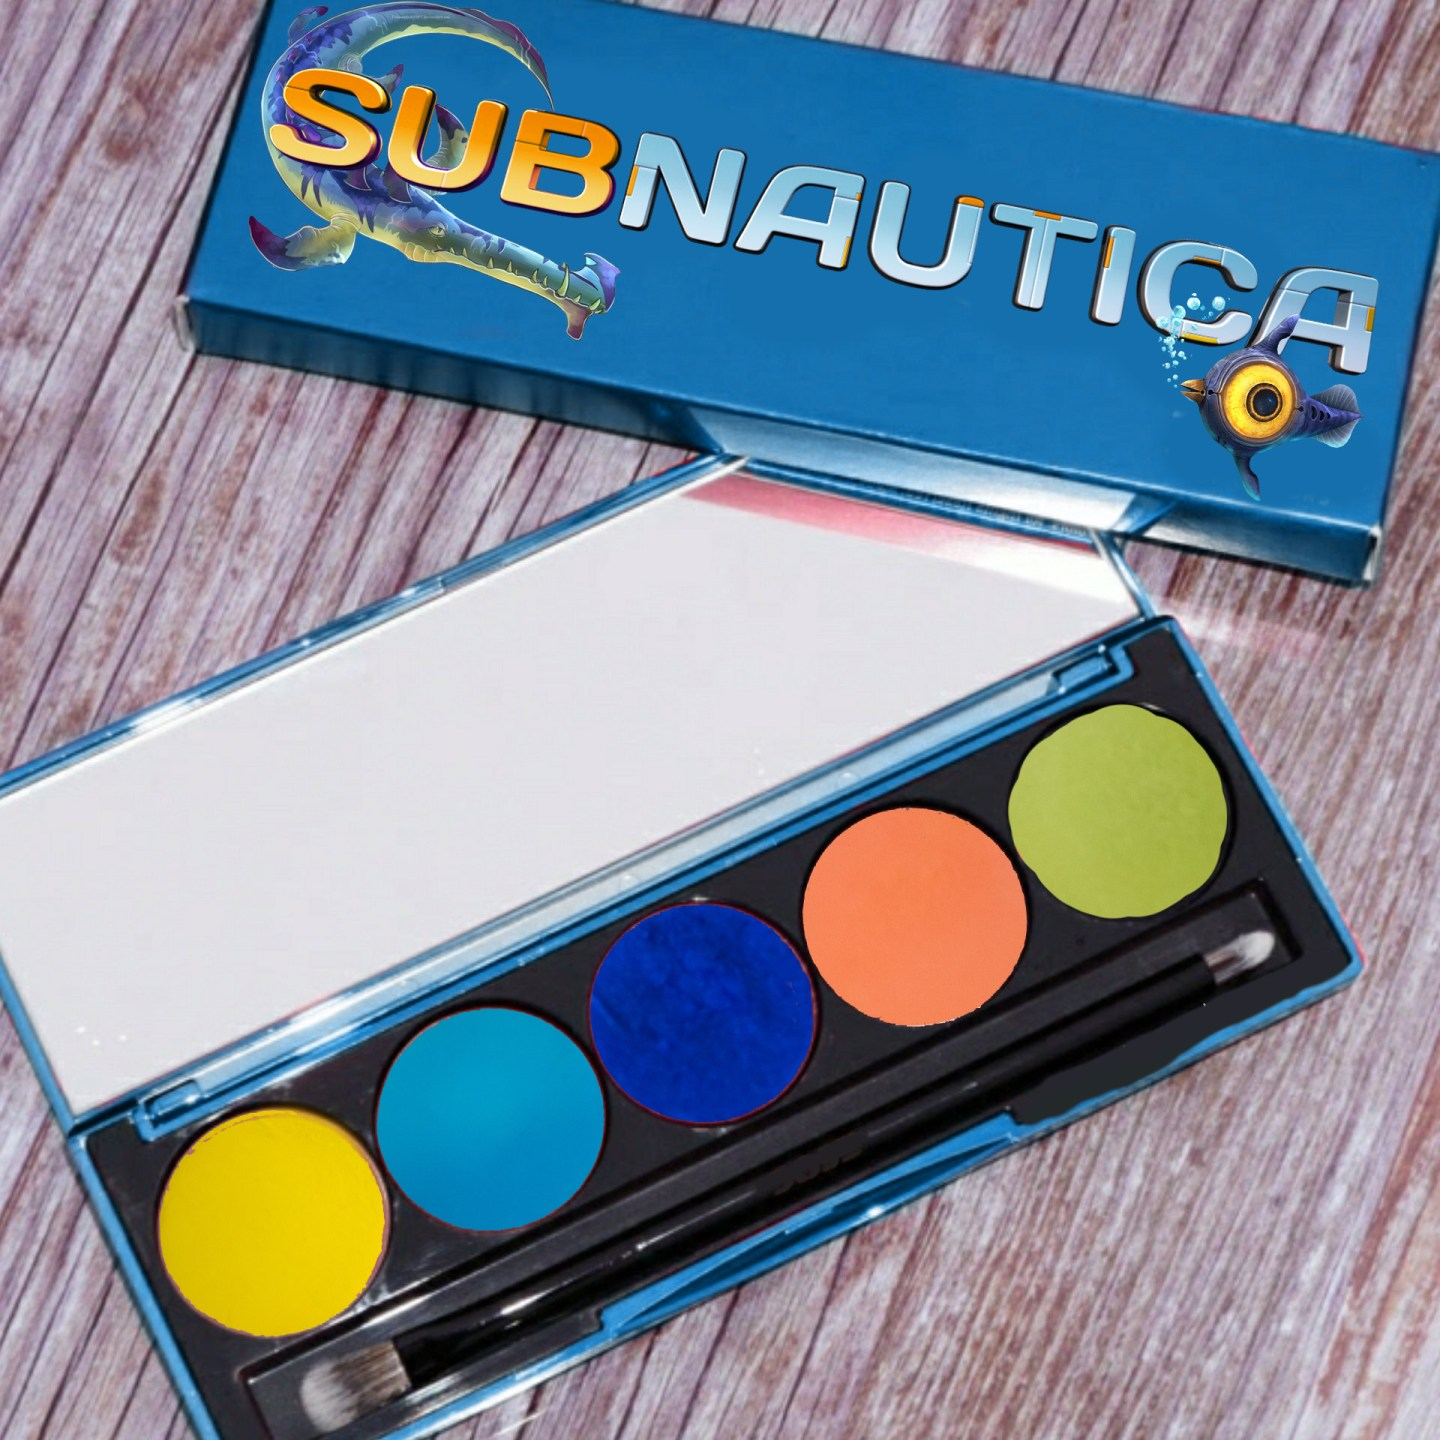 Making My Own Dream Palette Inspired by Subnautica 1